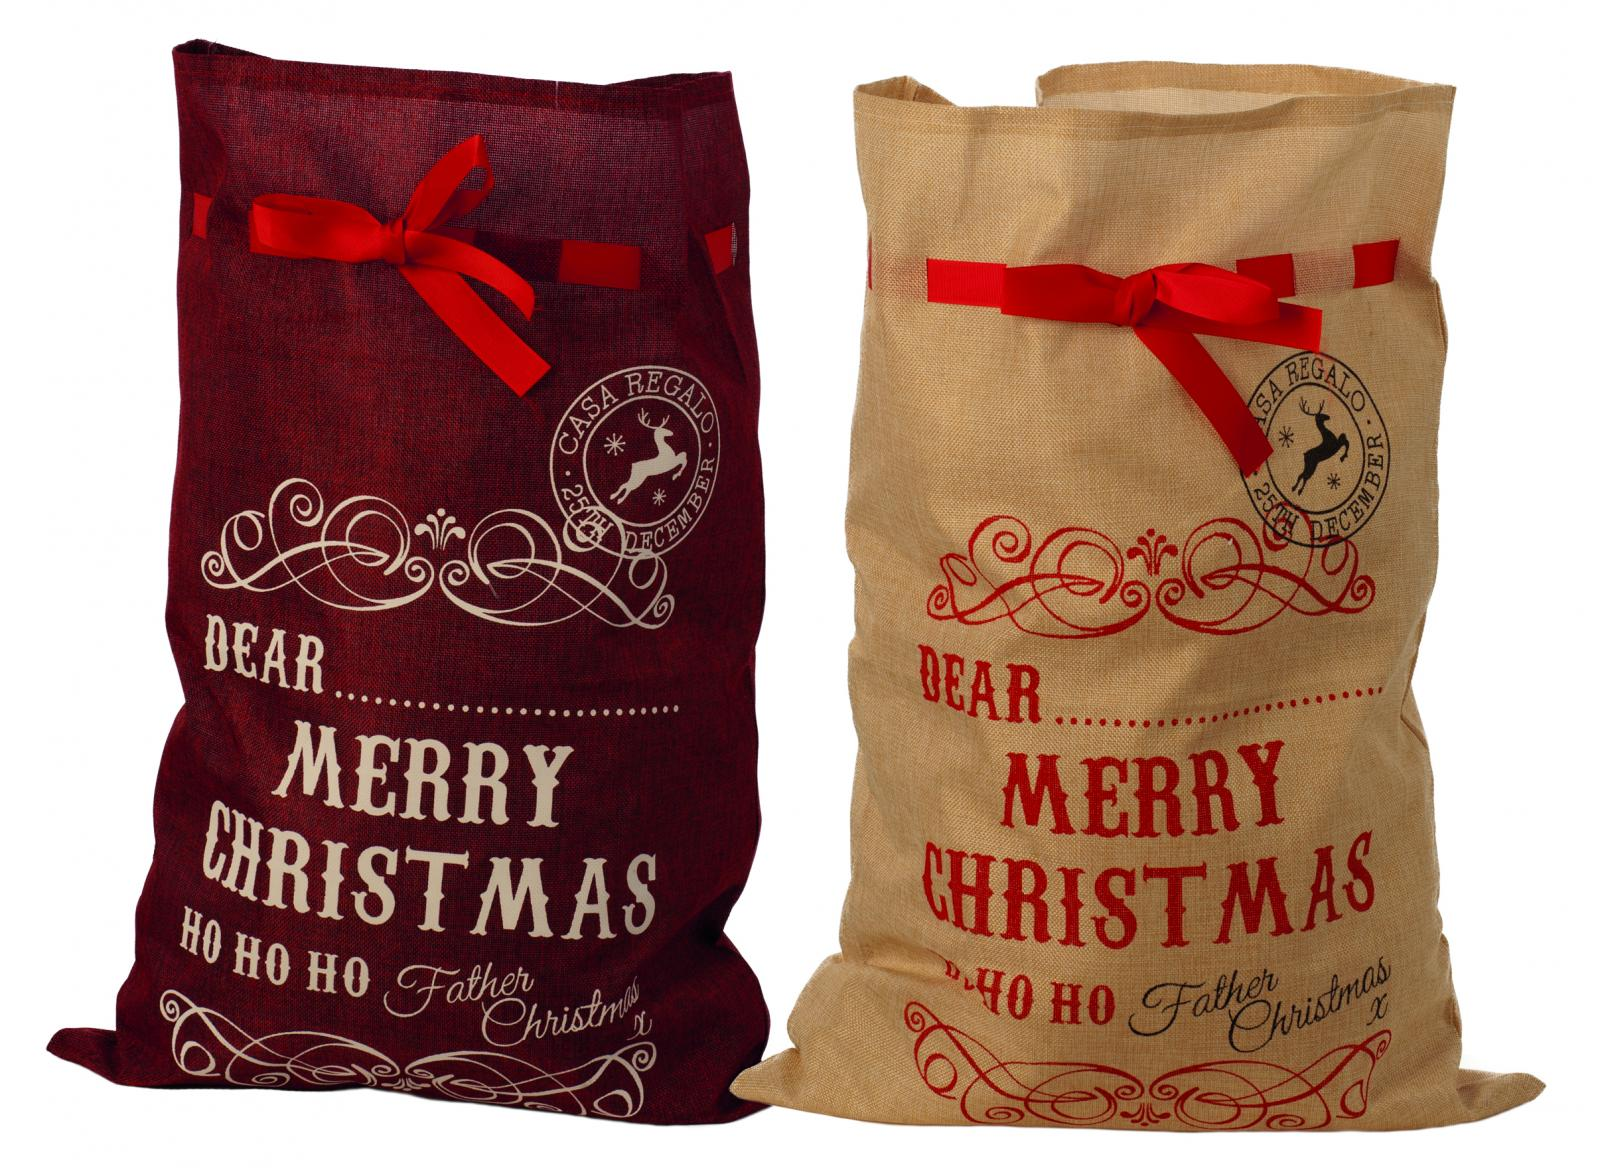 72cm 2 asstd merry christmas sacks – Now Only £5.00